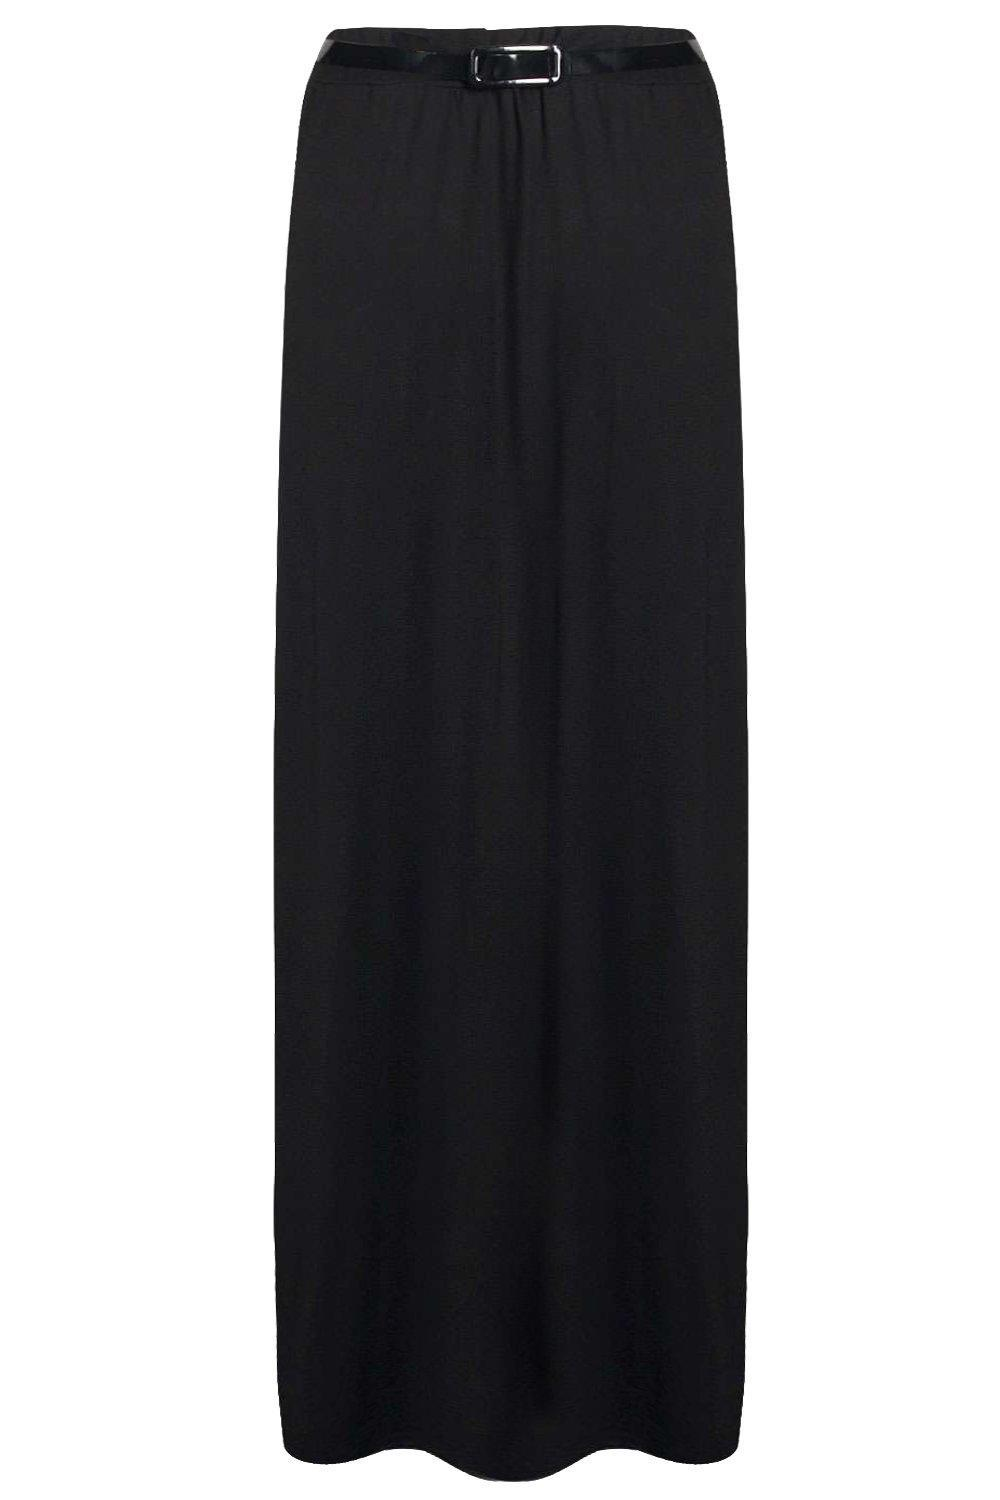 81131c6f3e9819 Boohoo Vivian Viscose Jersey Belted Maxi Skirt in Black - Lyst